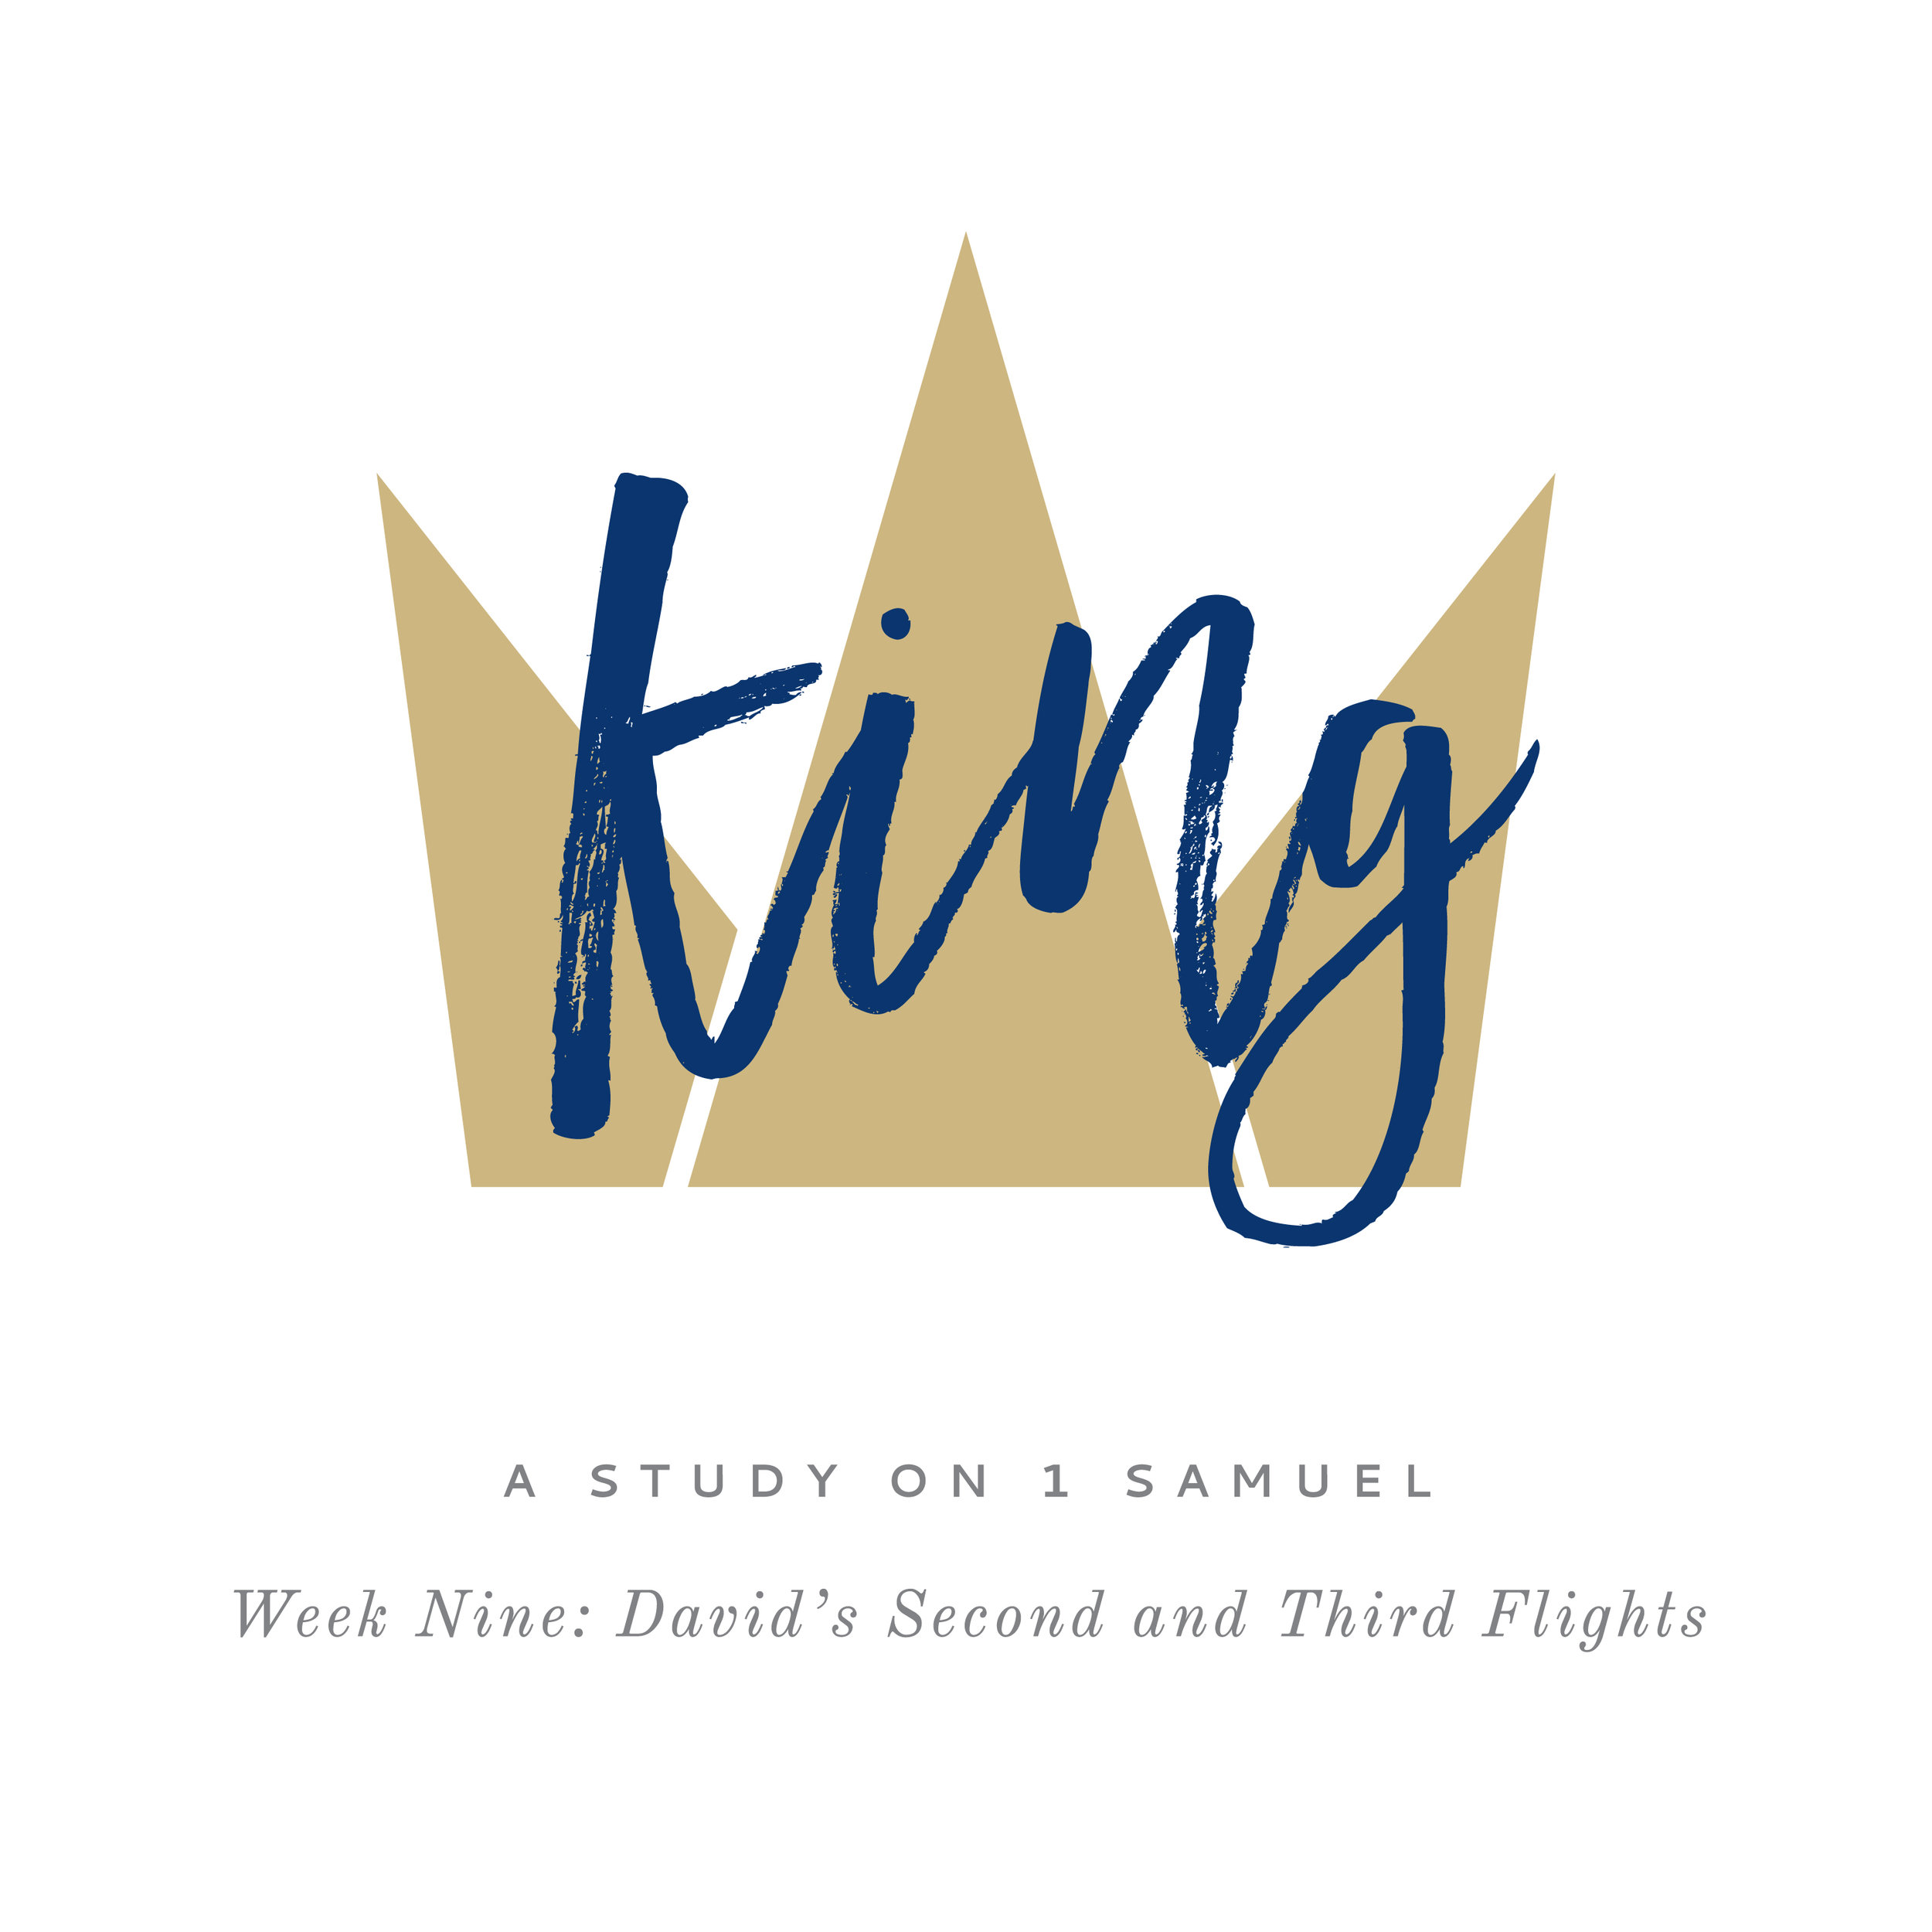 King (1 Samuel) Week 9: David's Second and Third Flights